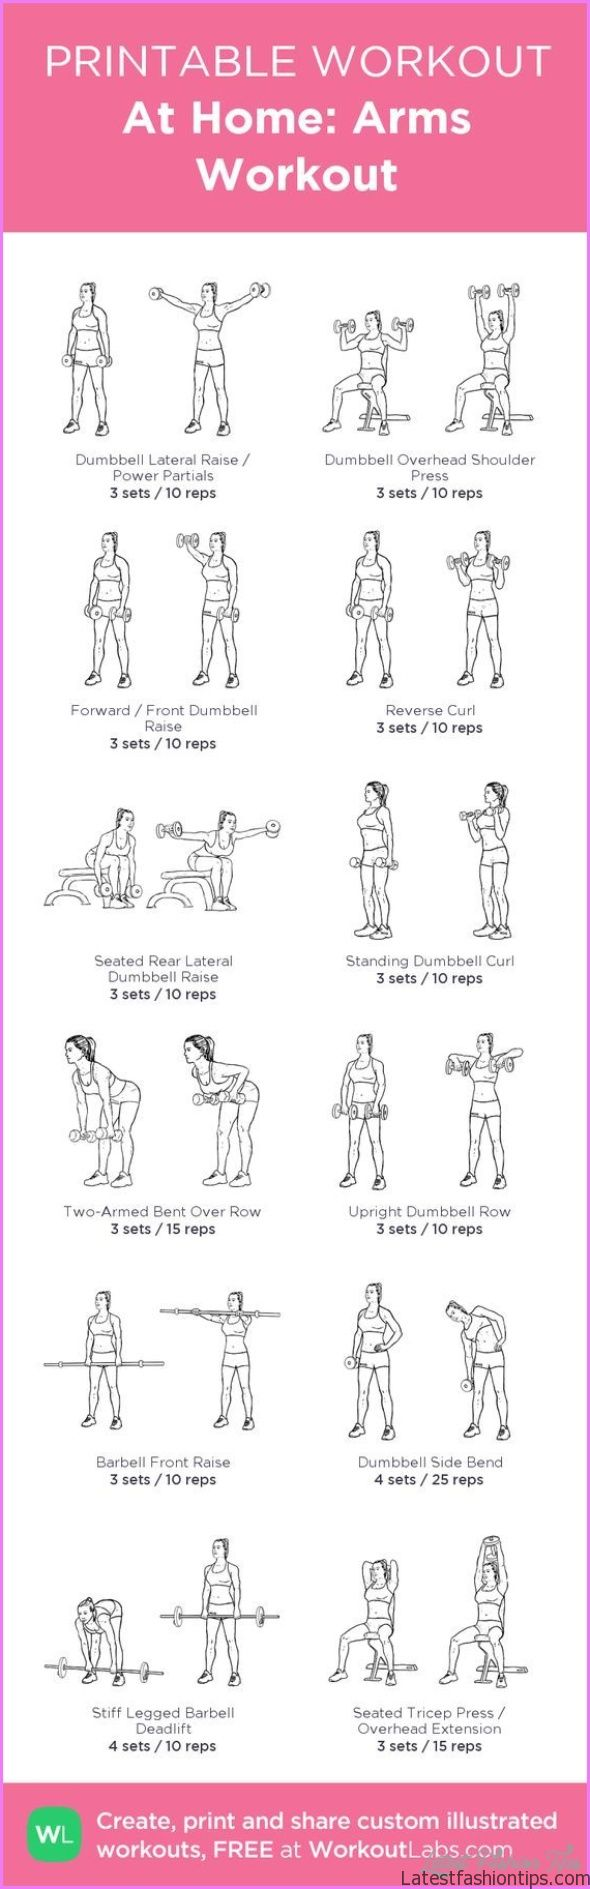 10 Dumbbell Exercises For Weight Loss _14.jpg